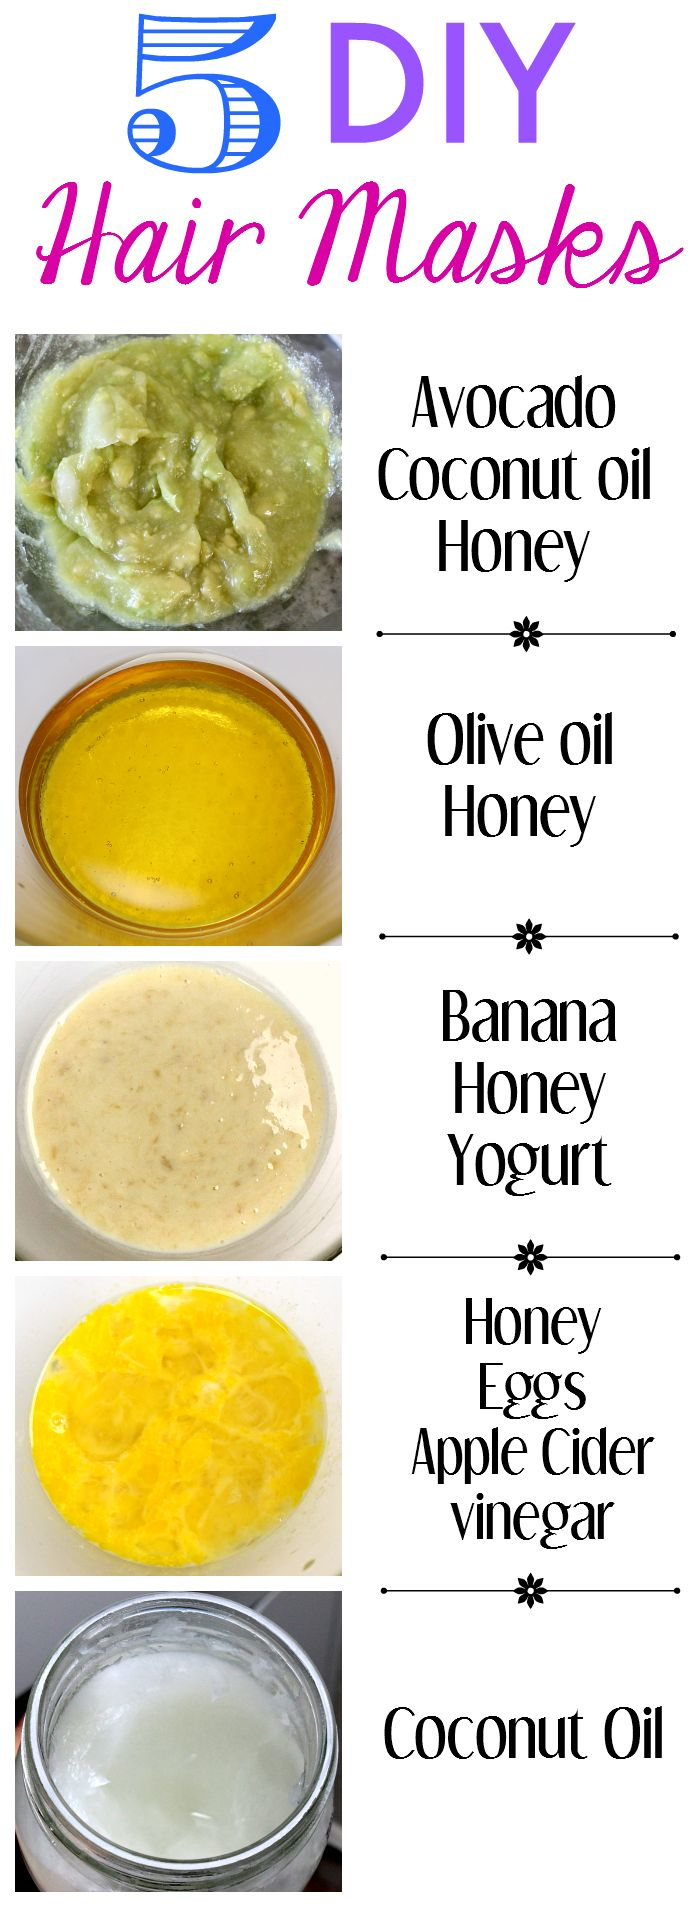 5 simple DIY hair mask recipes